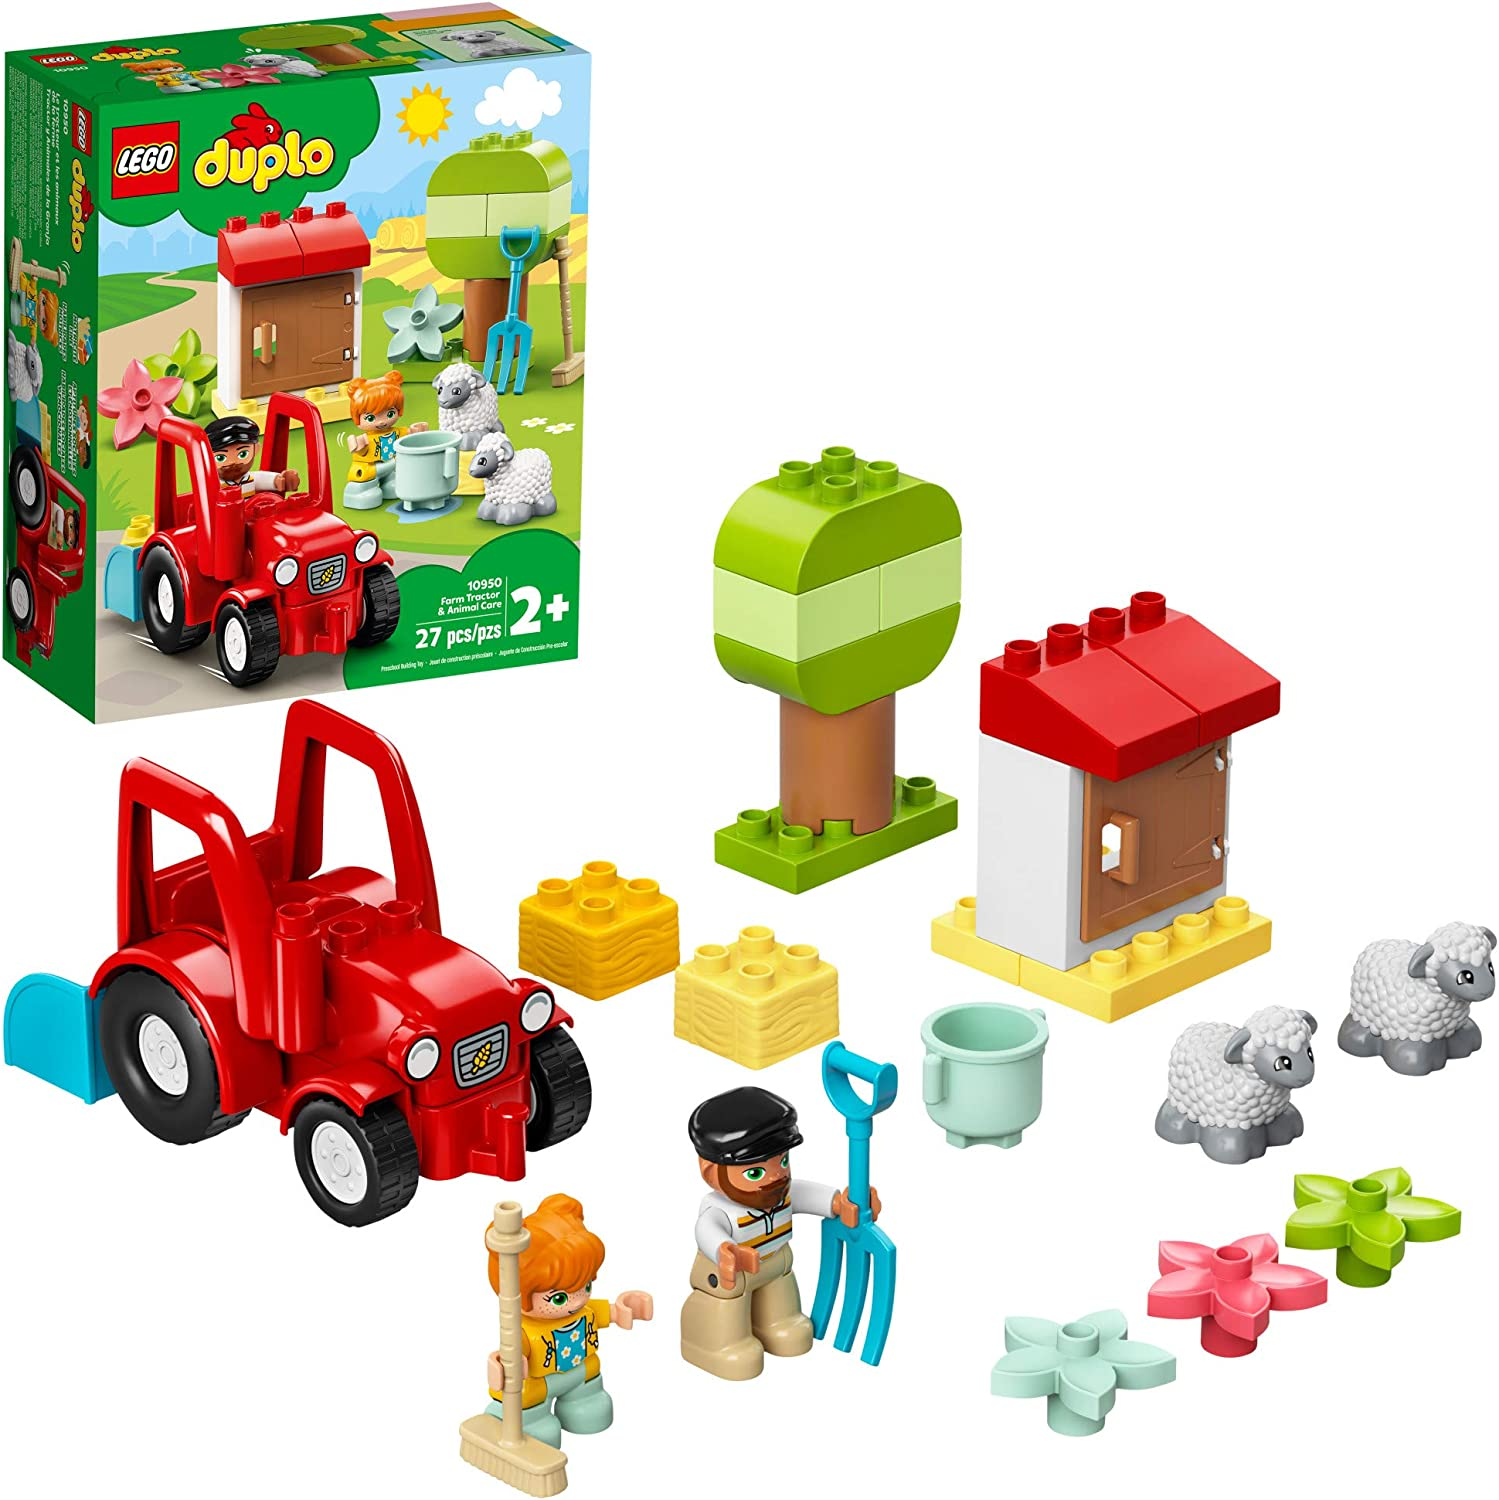 LEGO DUPLO Town Farm Tractor & Animal Care 10950 Creative Playset for Toddlers with a Toy Tractor and 2 Sheep, New 2021 (27 Pieces)